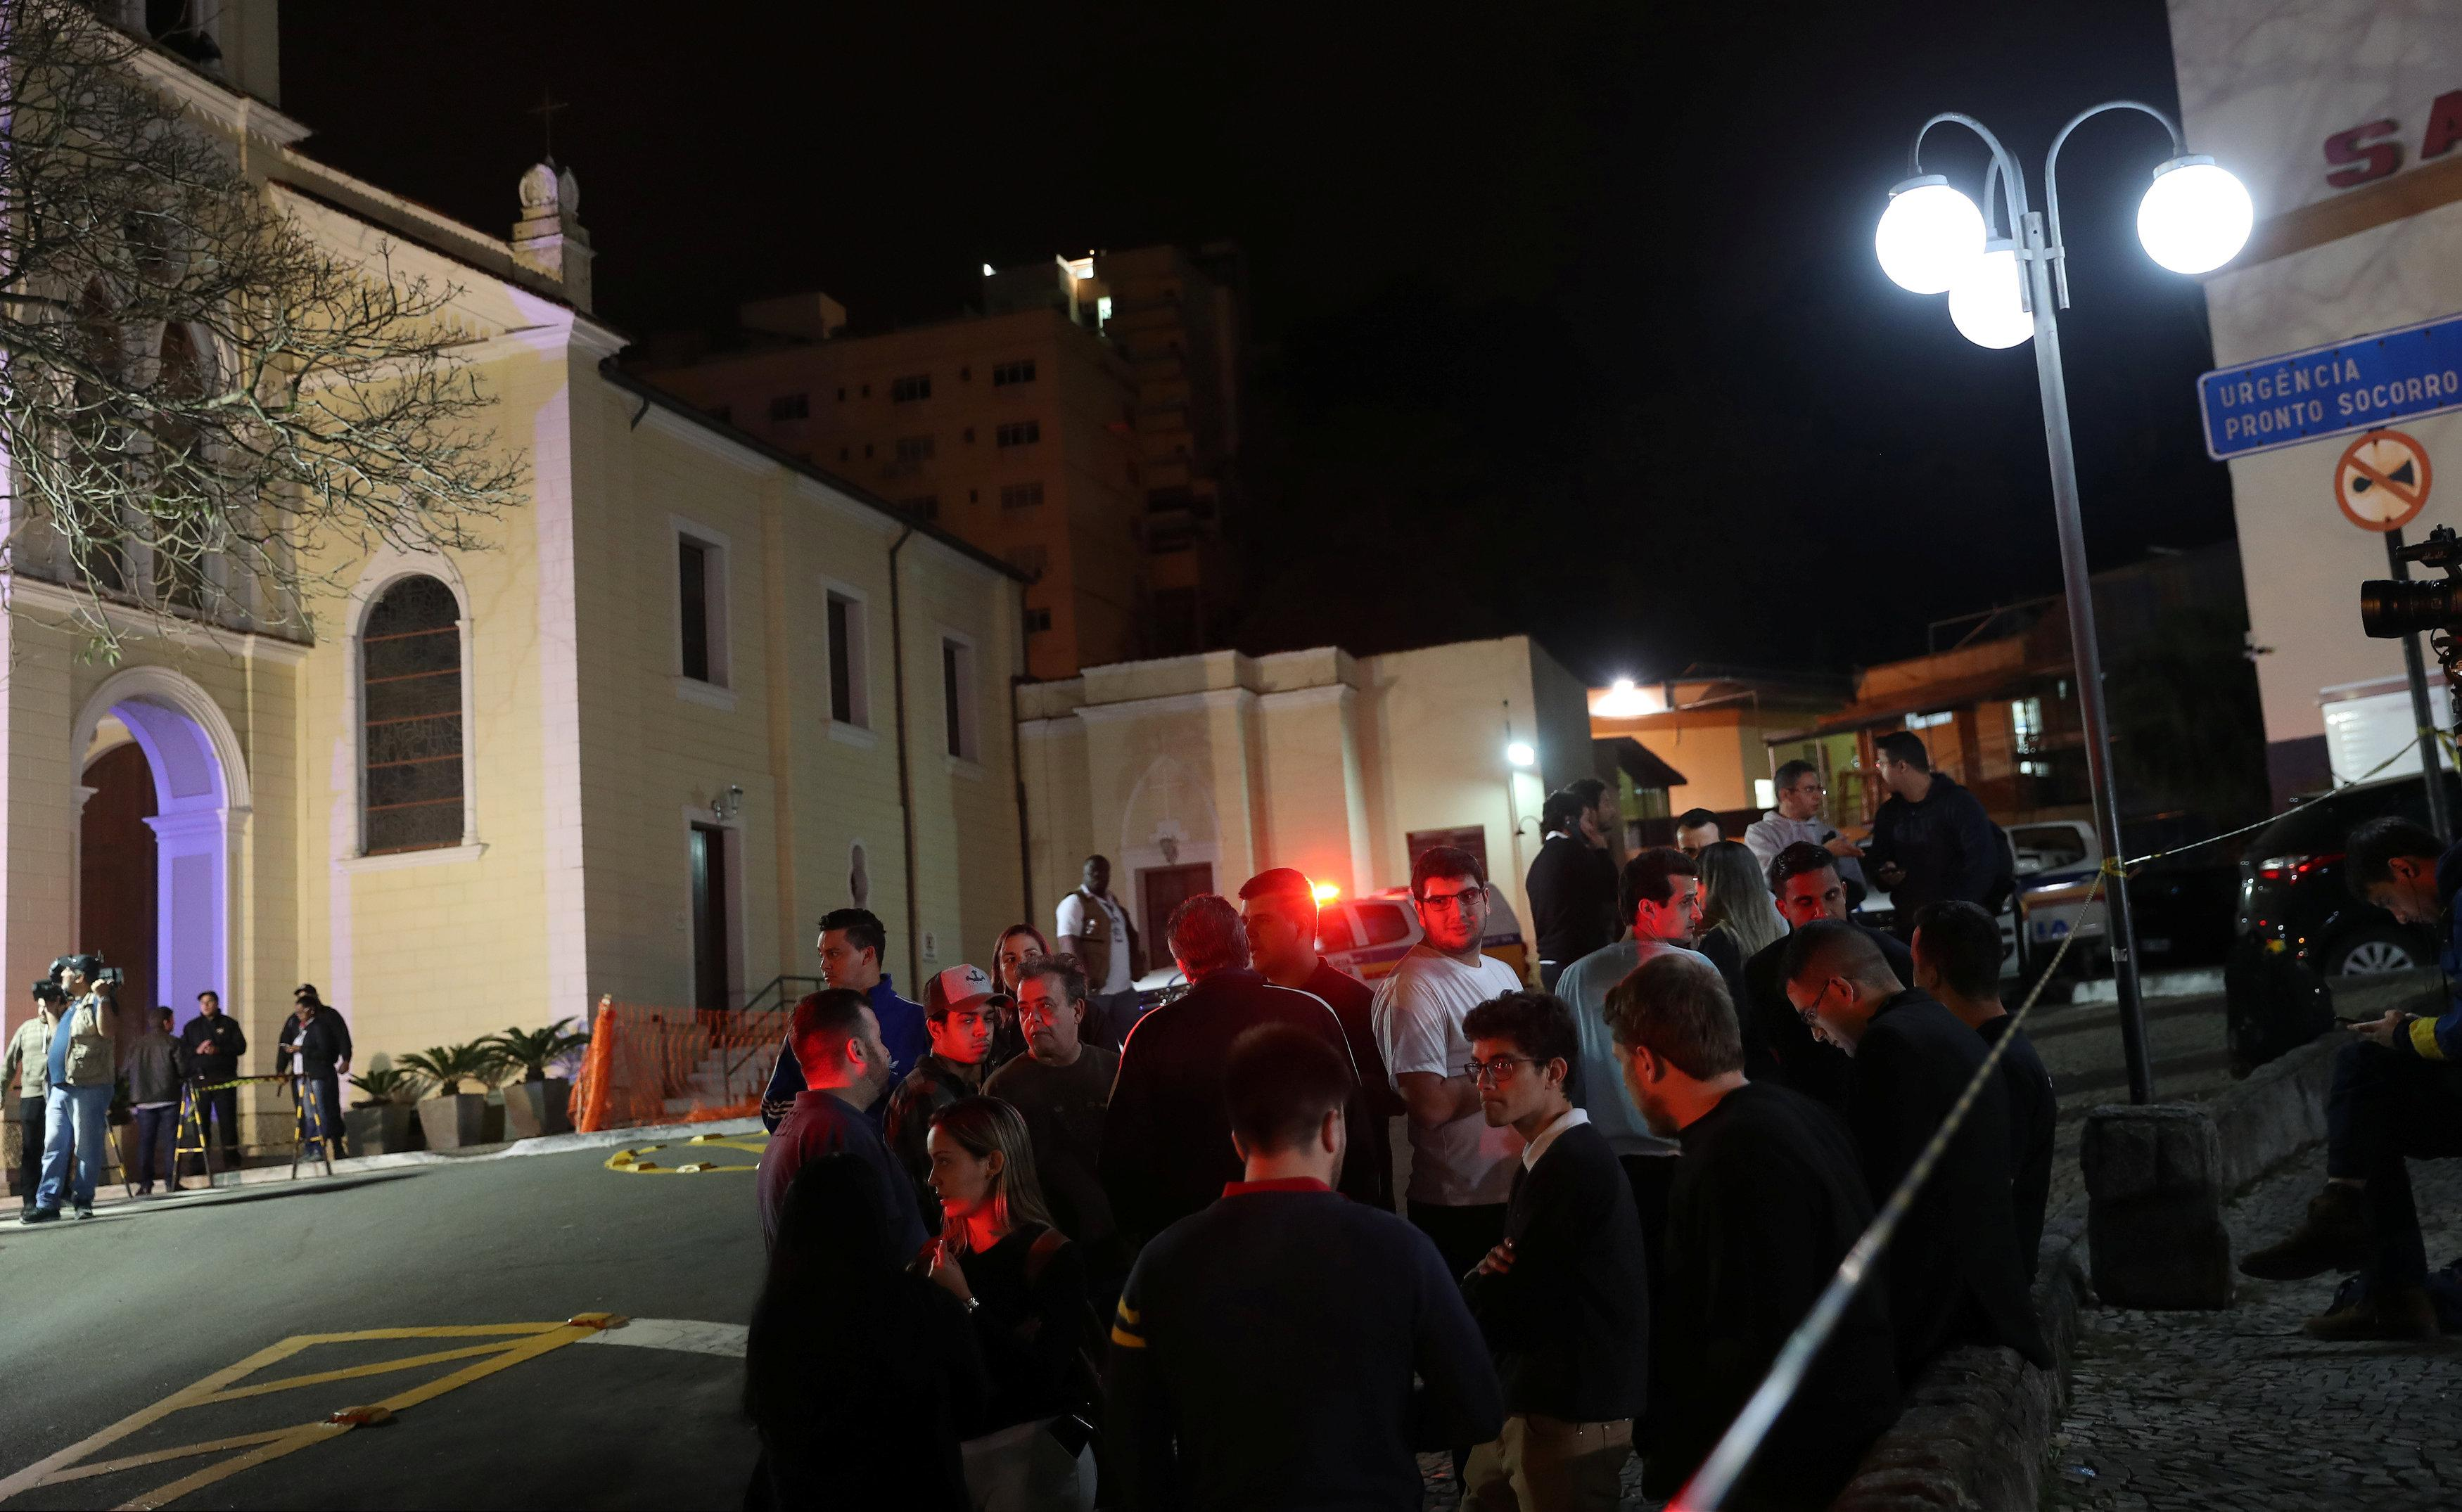 Supporters of presidential candidate Jair Bolsonaro are pictured outside the Santa Casa hospital where he was hospitalized after being stabbed in Juiz de Fora, Brazil September 6, 2018. Ricardo Moraes